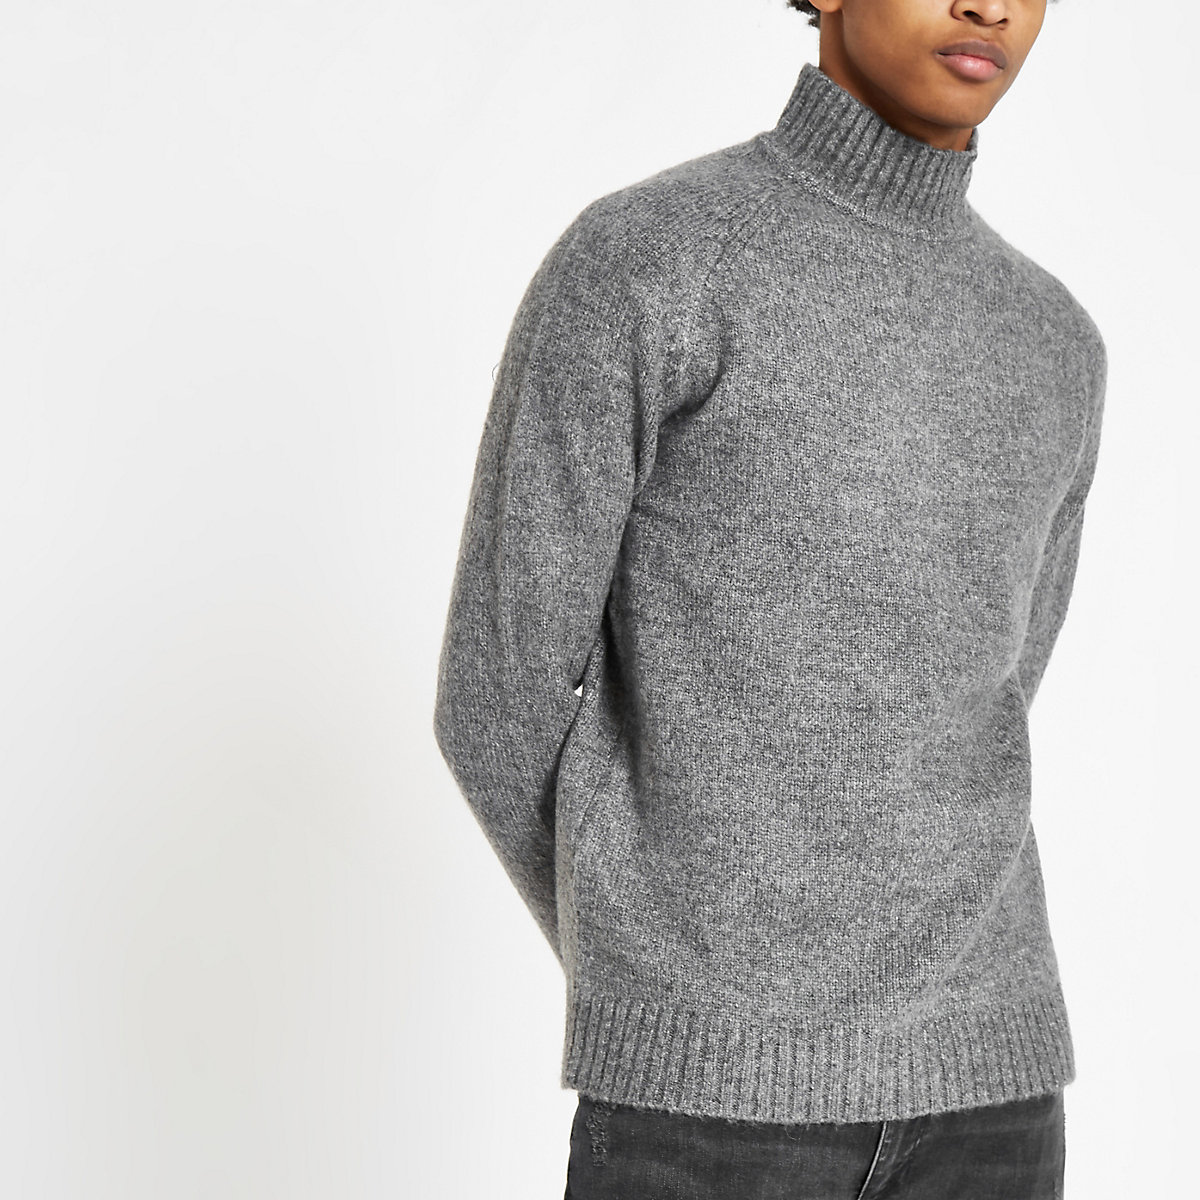 Only & Sons grey knit high neck jumper